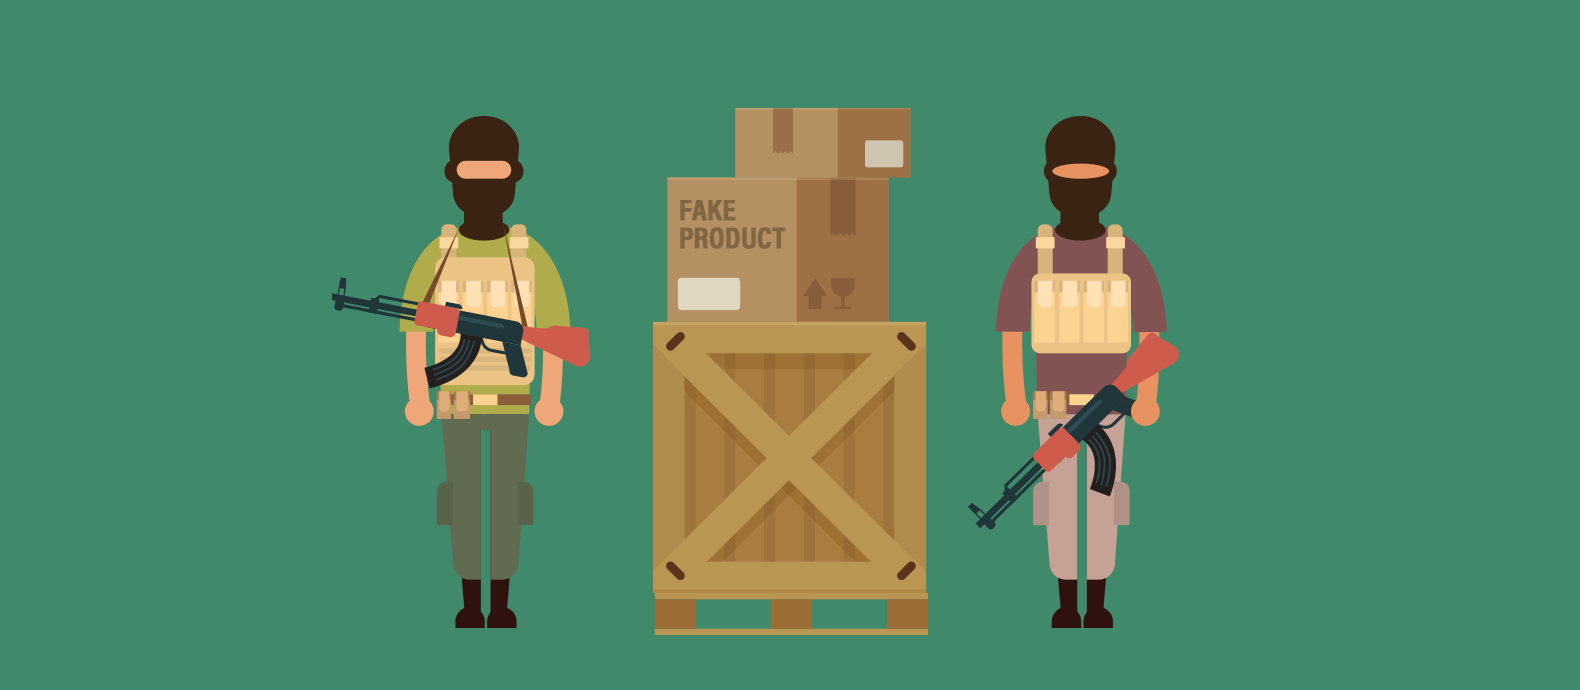 The links between counterfeiting, piracy and terrorism.